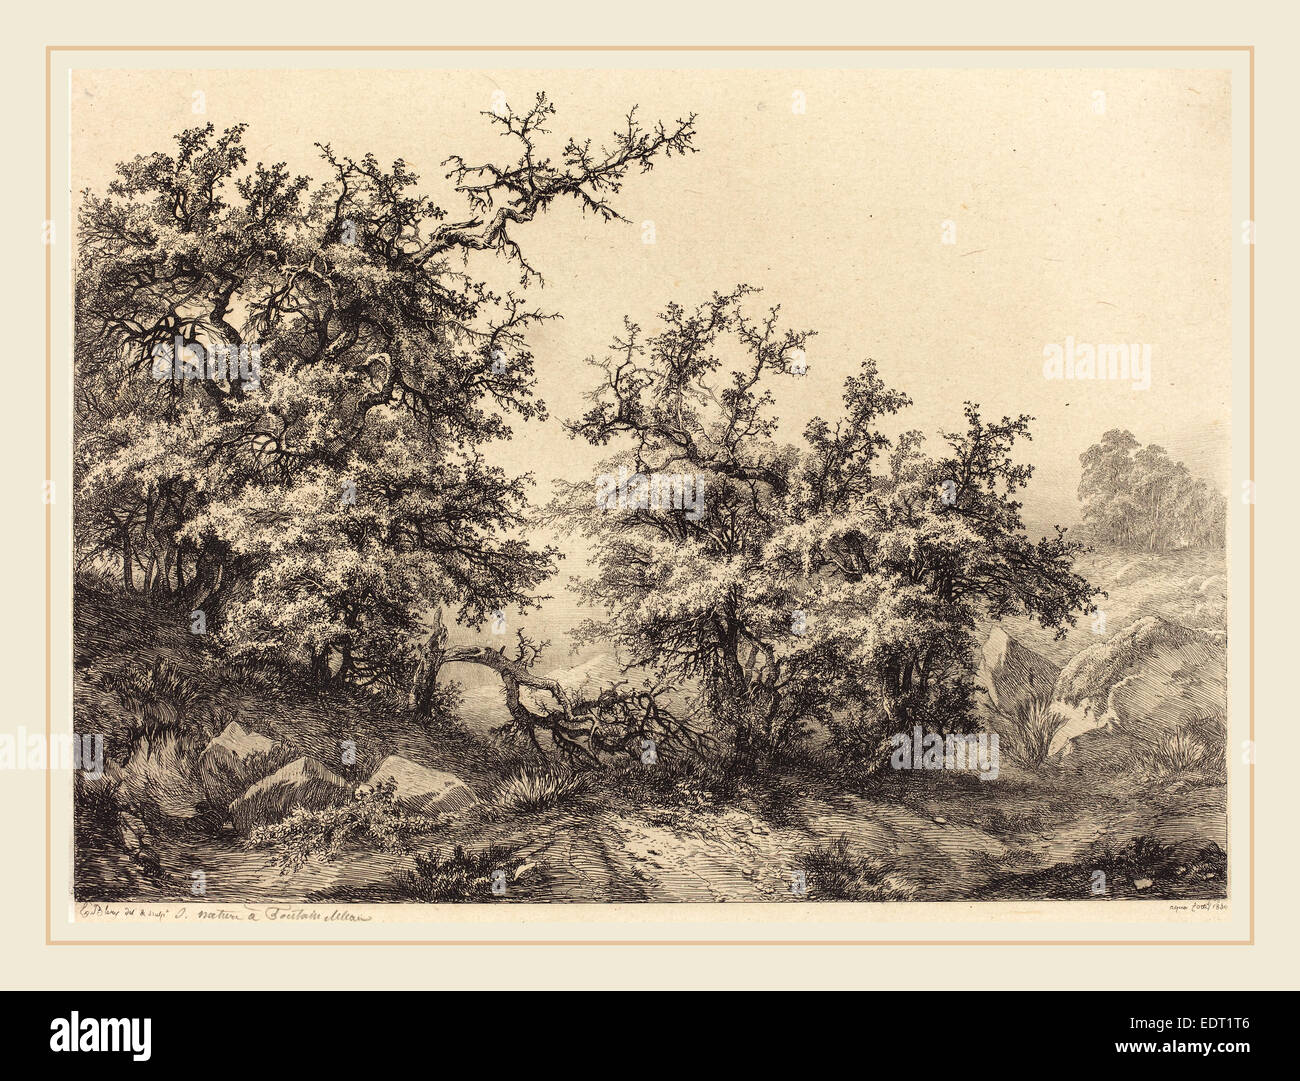 Eugène Bléry (French, 1805-1887), Thornbushes, 1840, etching with drypoint and roulette on chine collé - Stock Image